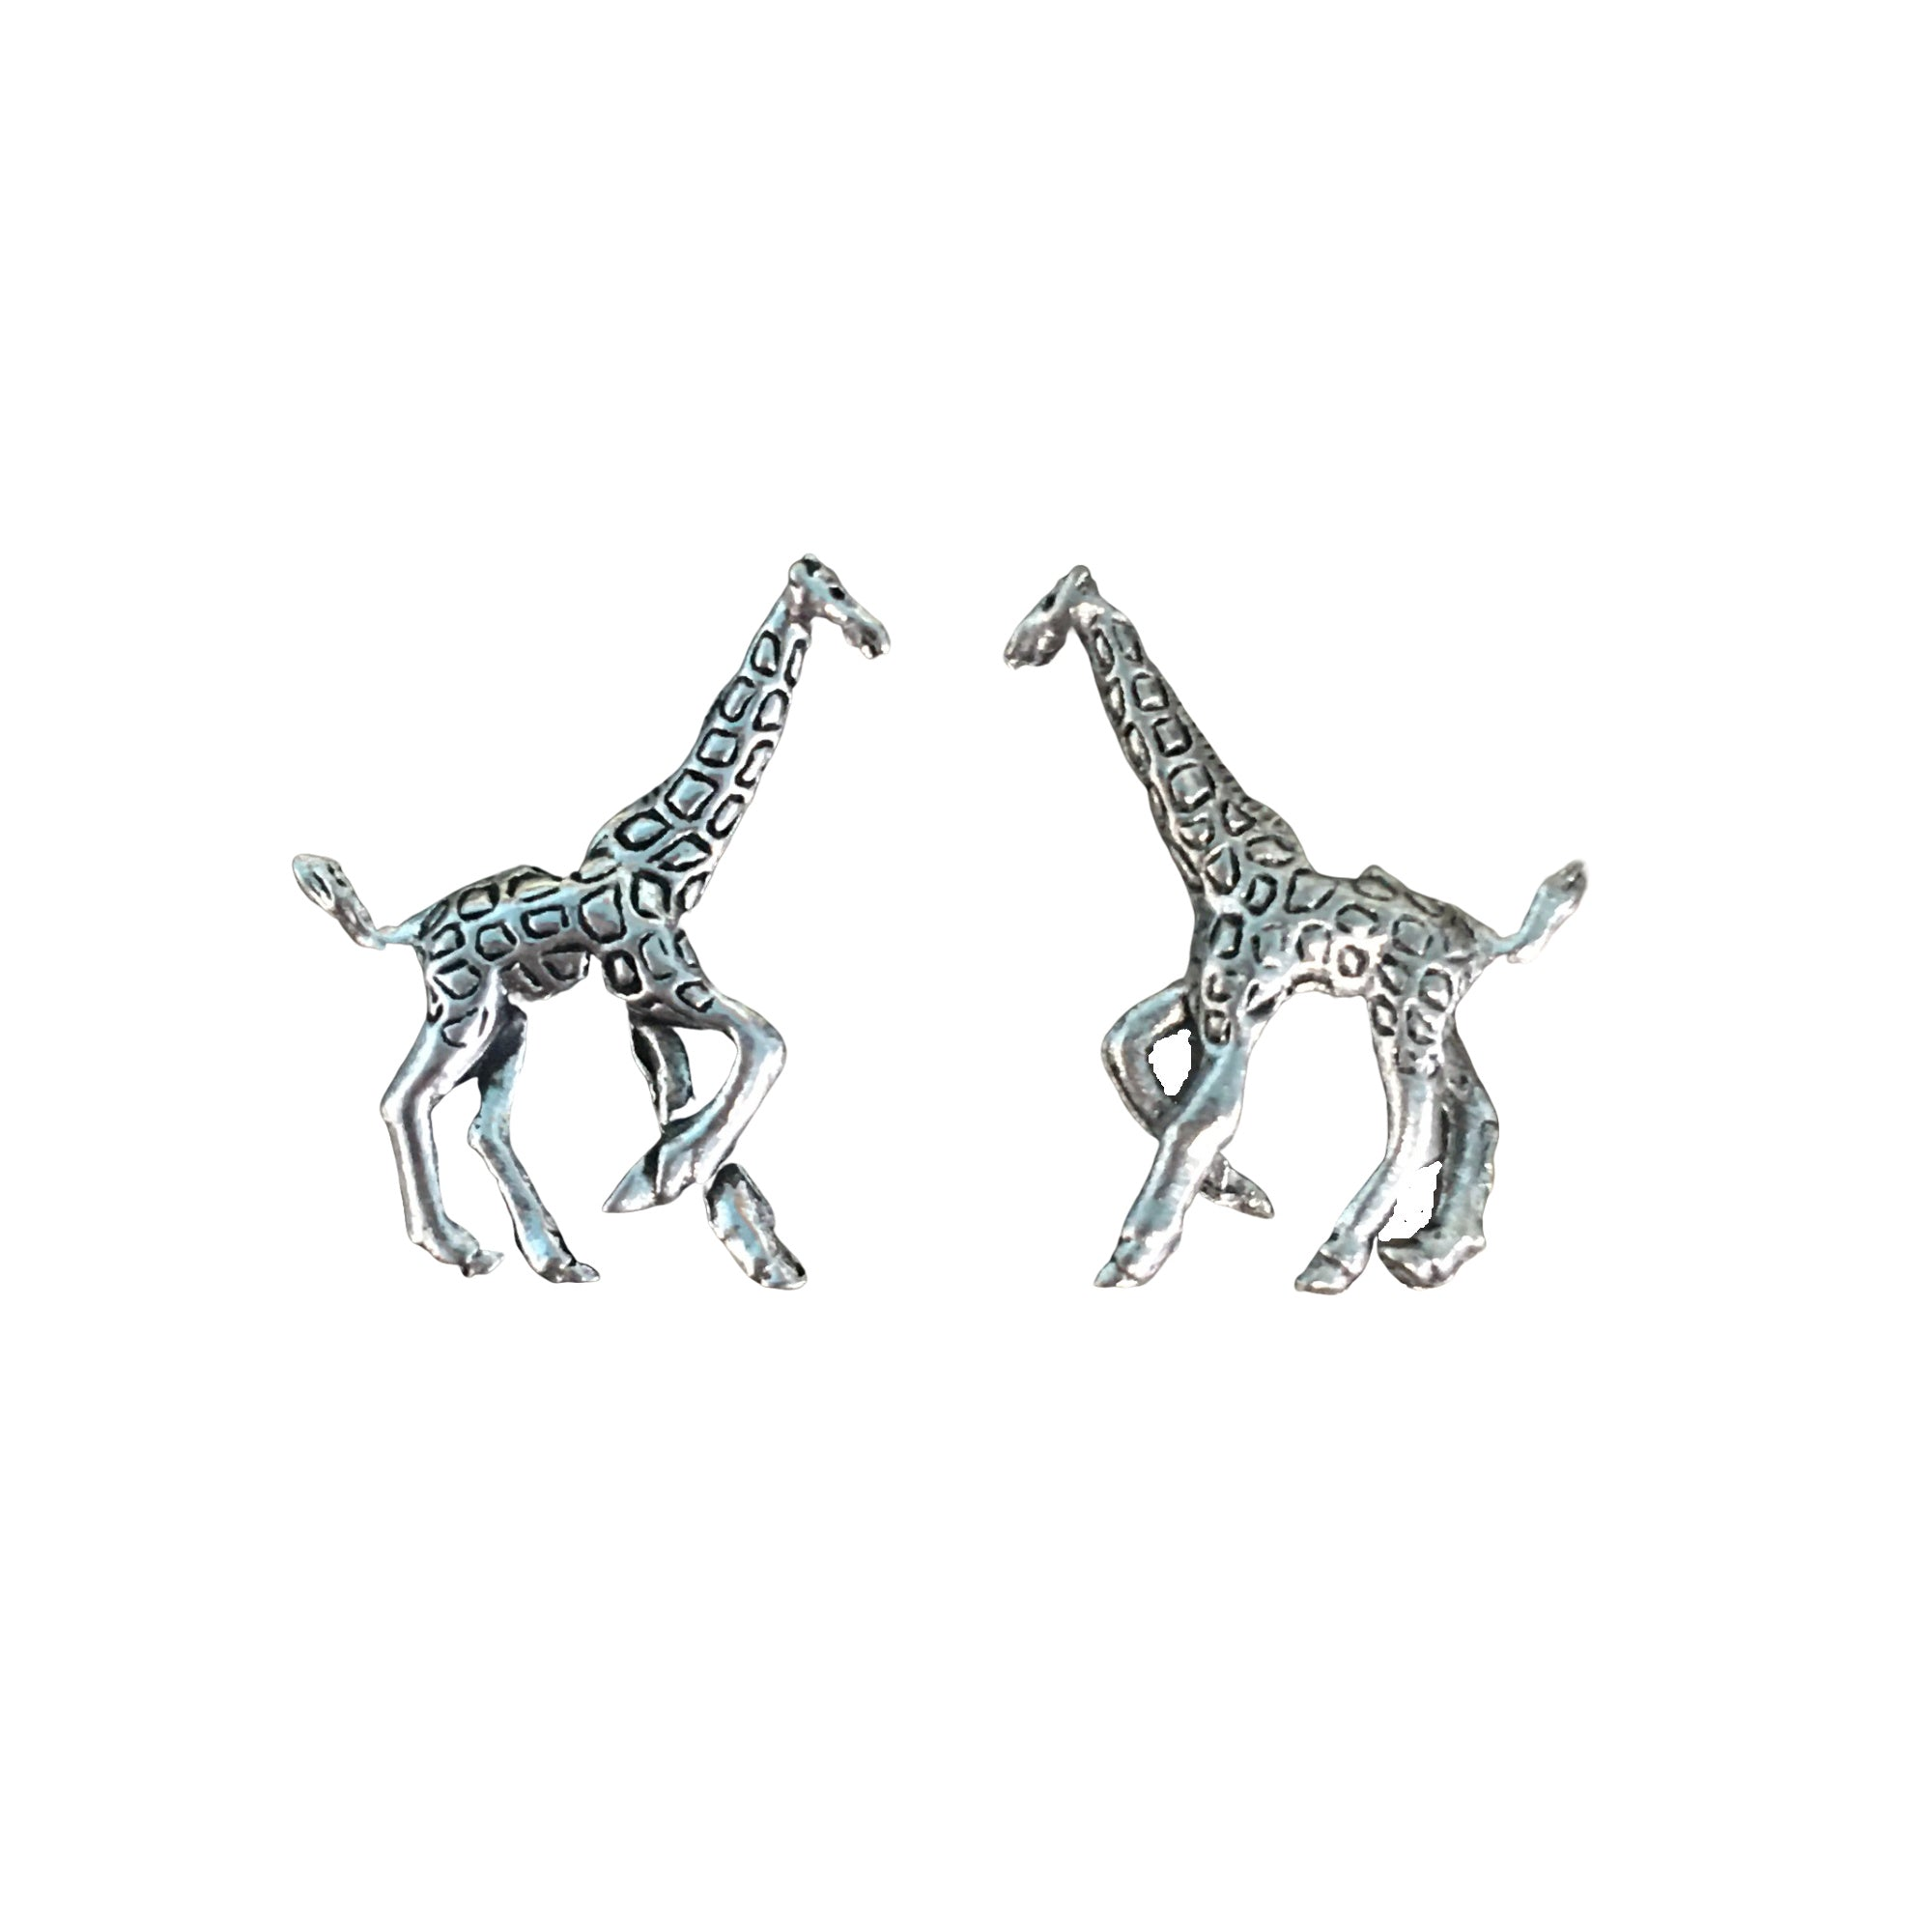 Giraffe Beads - Qty 5 - Lead Free Pewter Silver - American Made